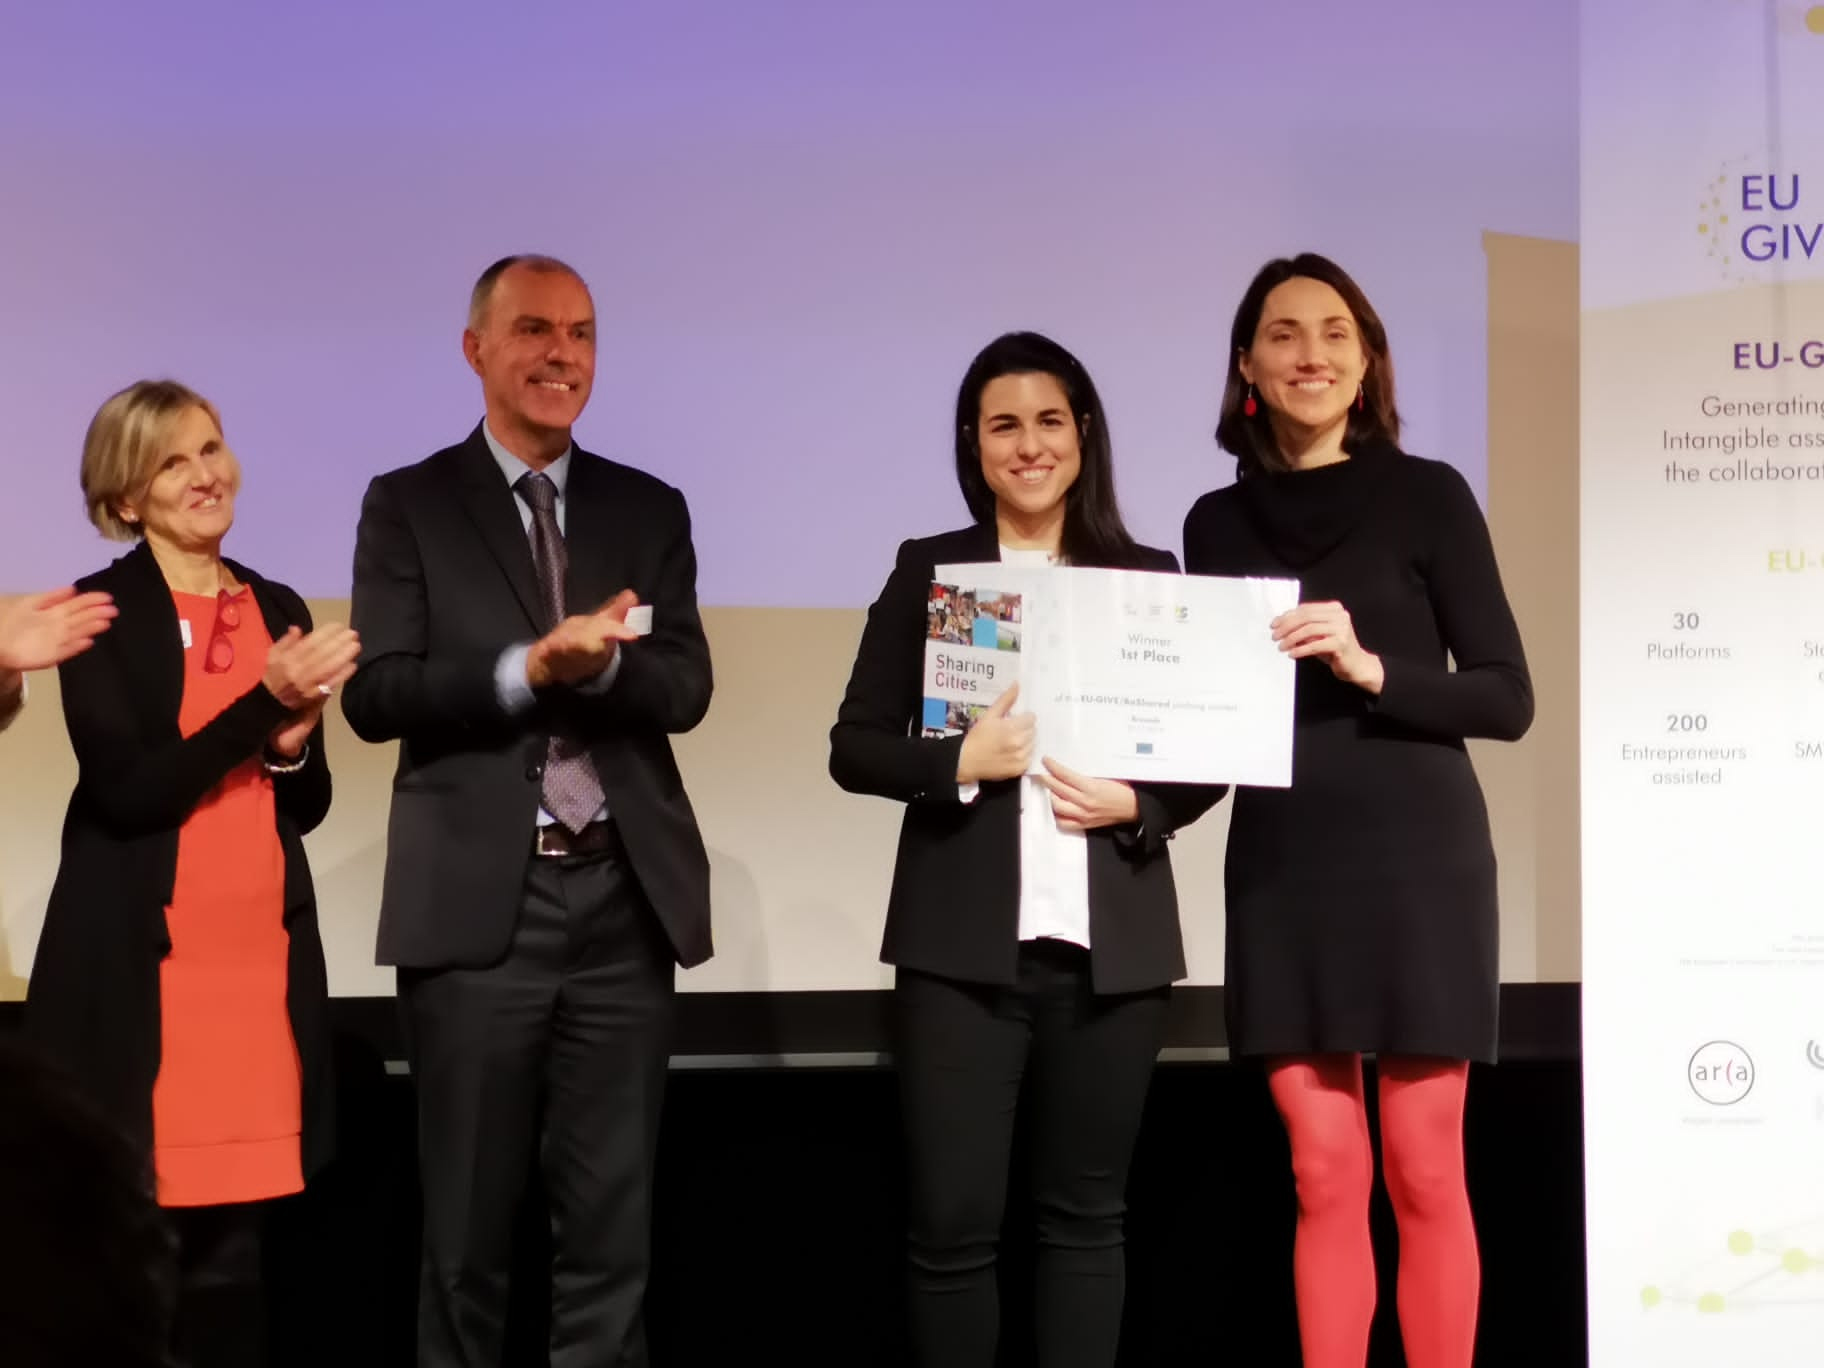 Pensumo awarded by the European Commission's EU-GIVE programme on Collaborative Economy